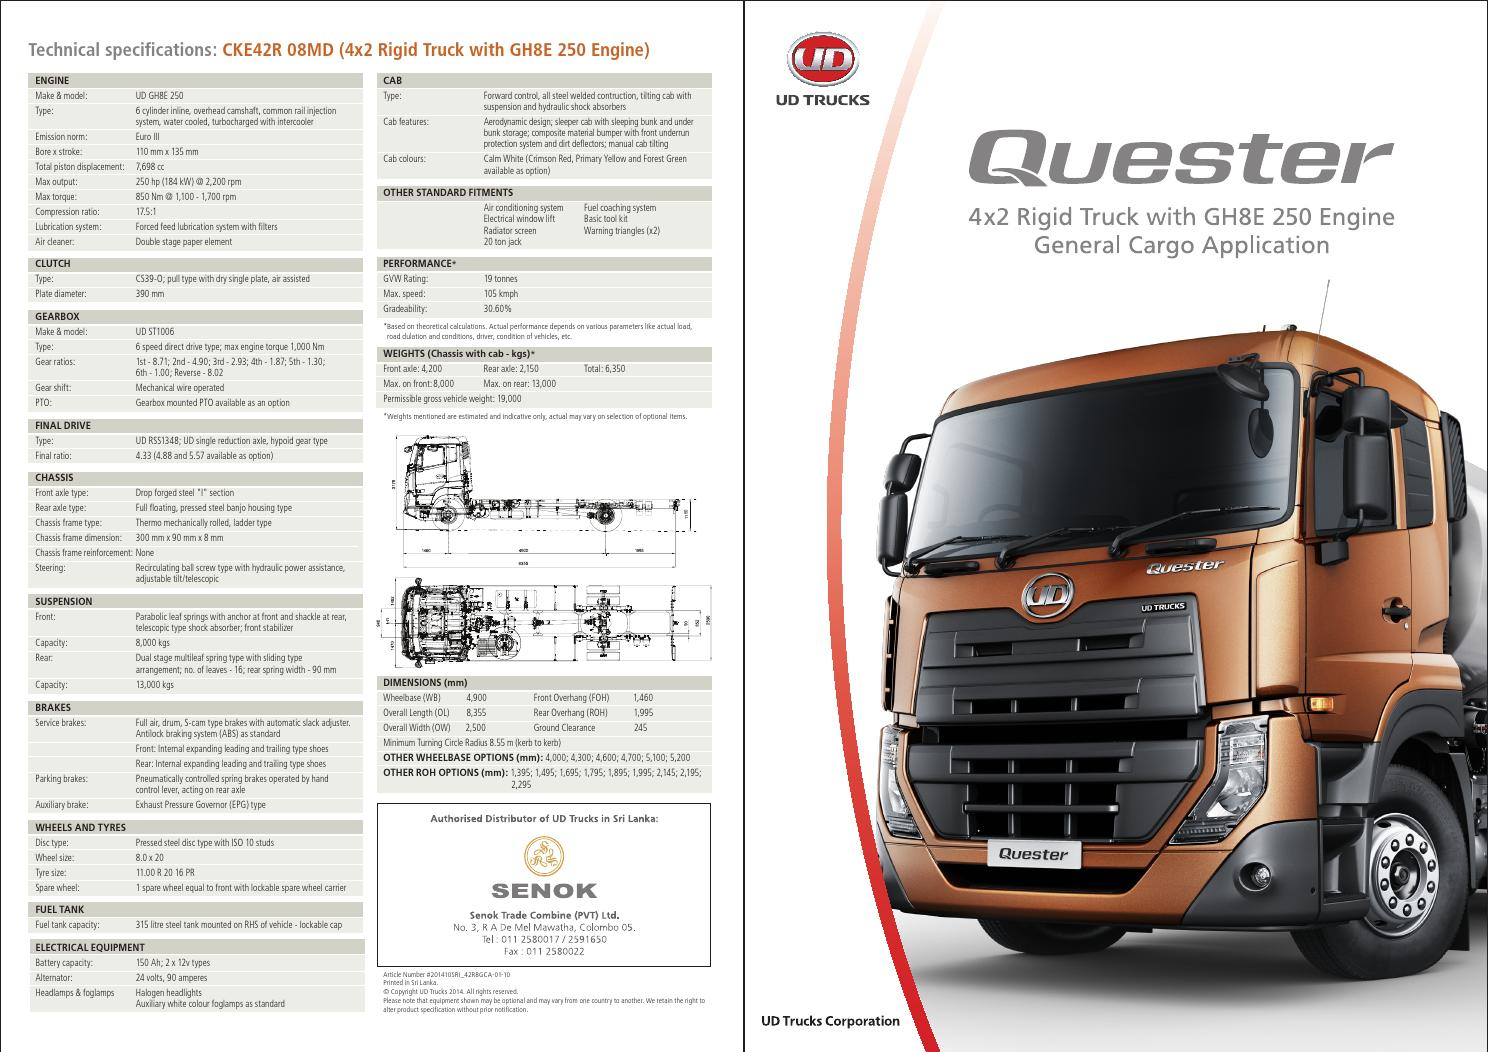 Quester Cke Mde8 Cargo Specification Sheet By Ud Trucks Corporation